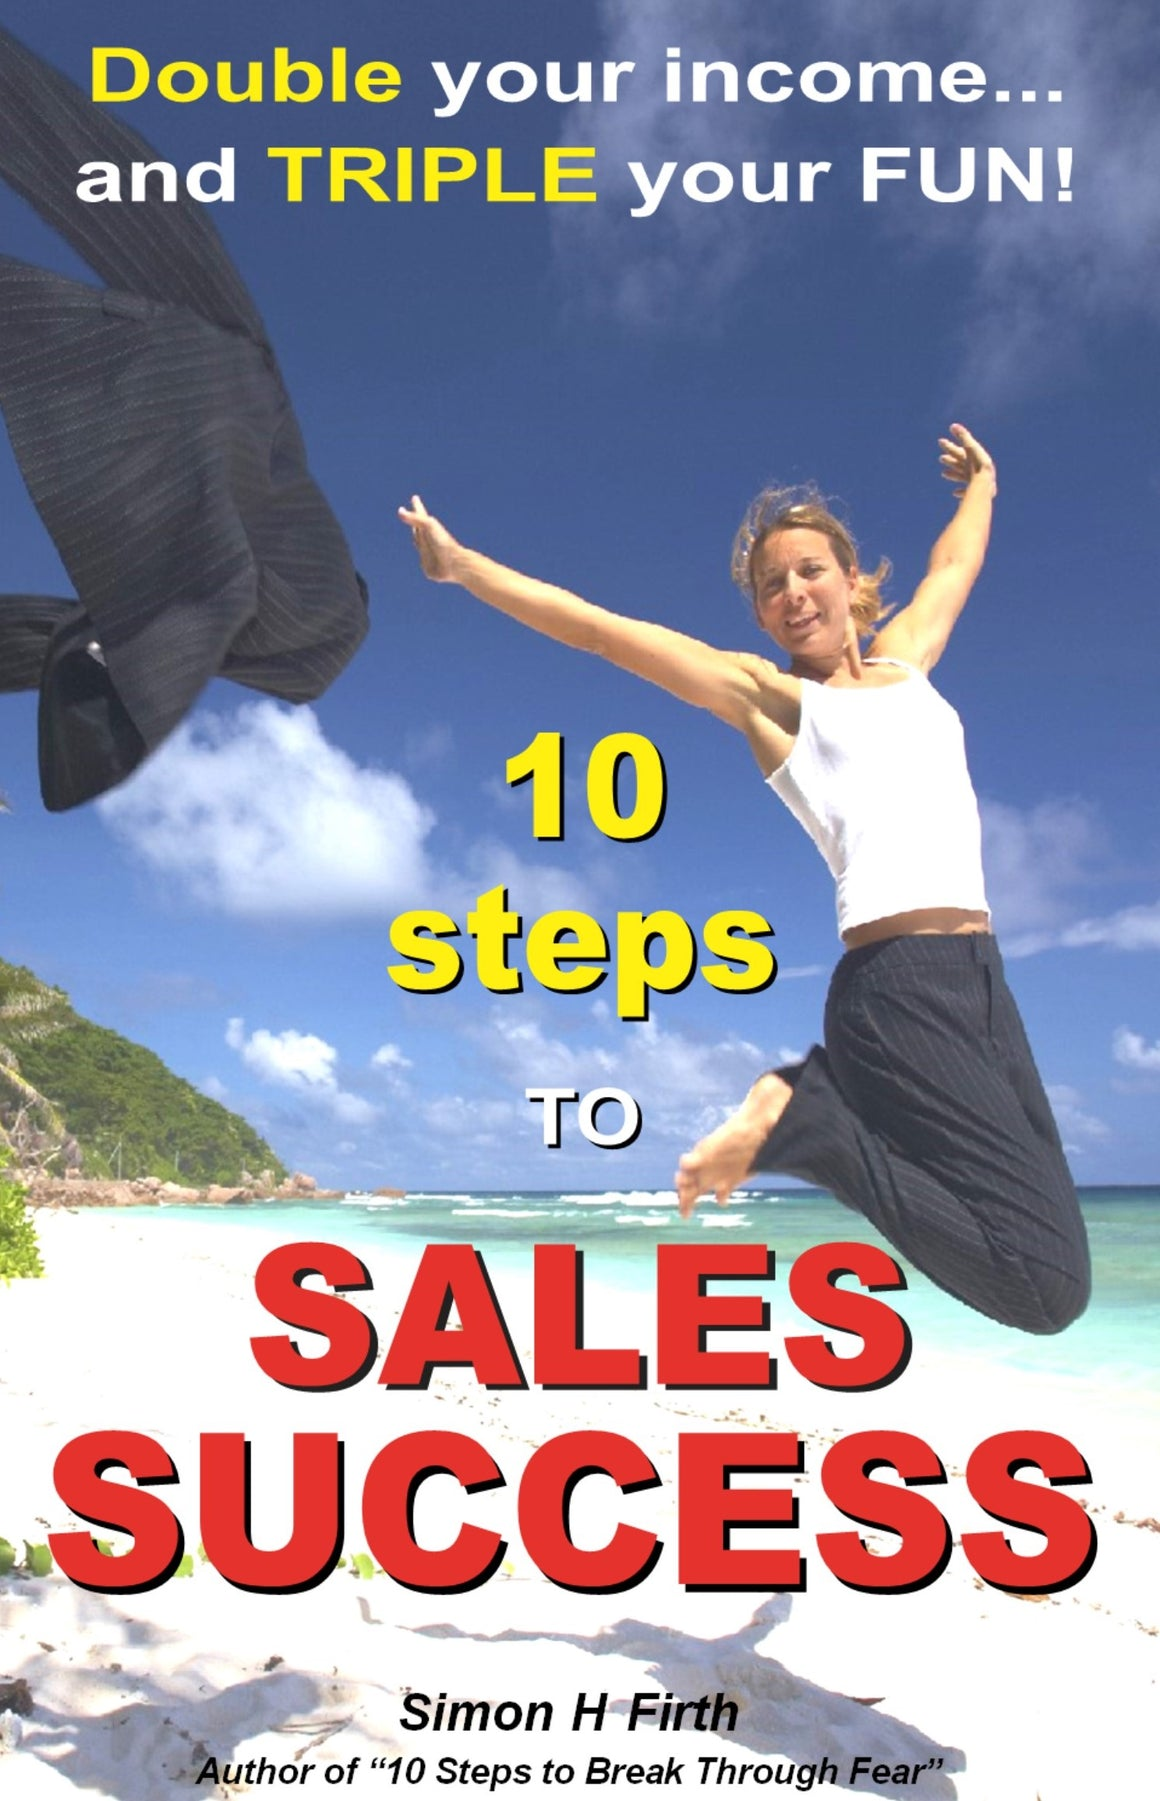 10 STEPS TO SALES SUCCESS: It's so easy when you know how! (158 pages)